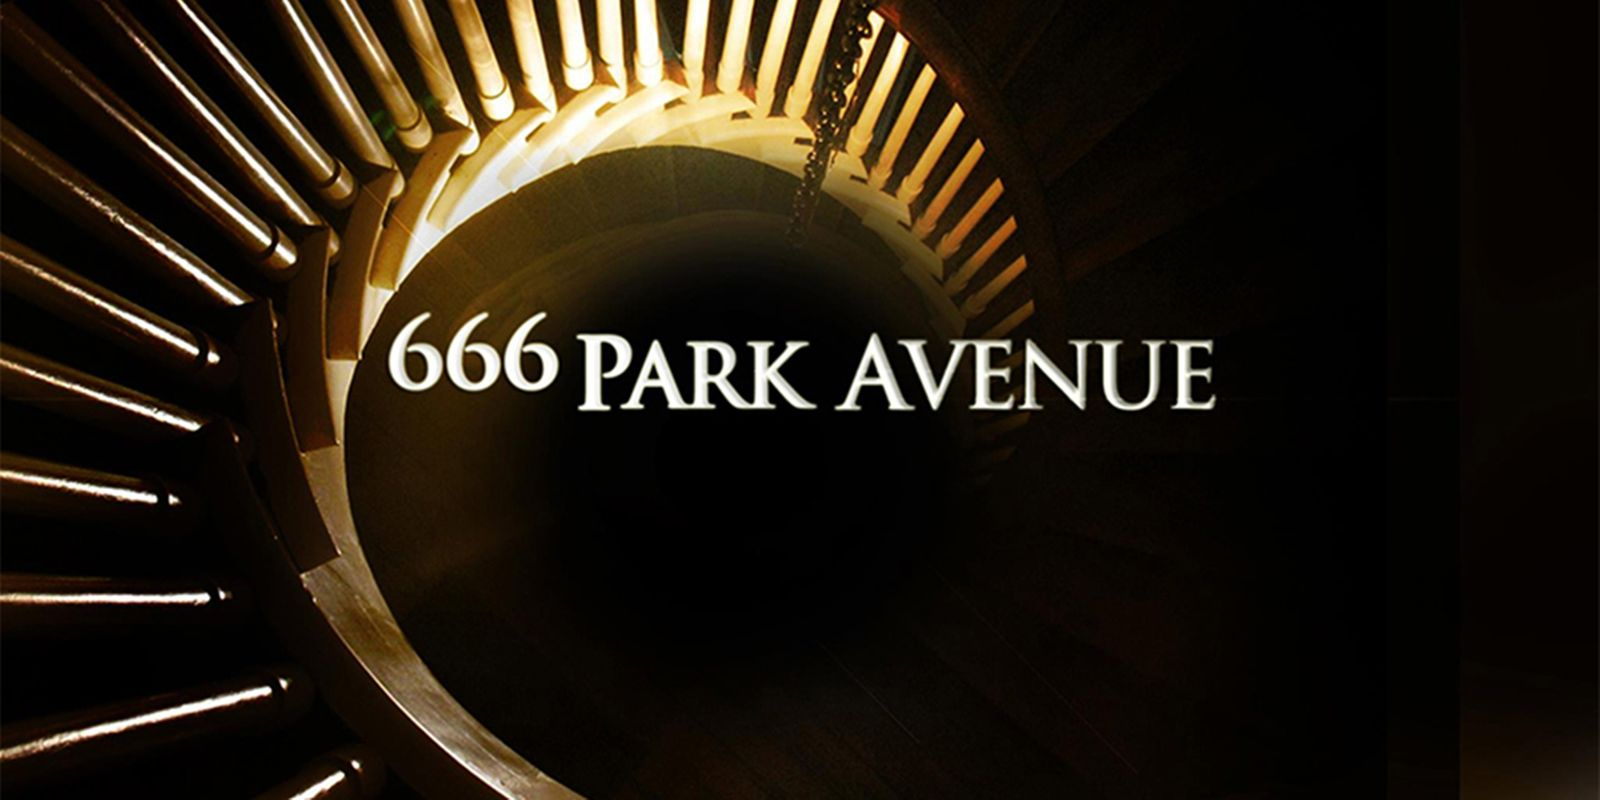 666-park-avenue-crop-rev.jpg